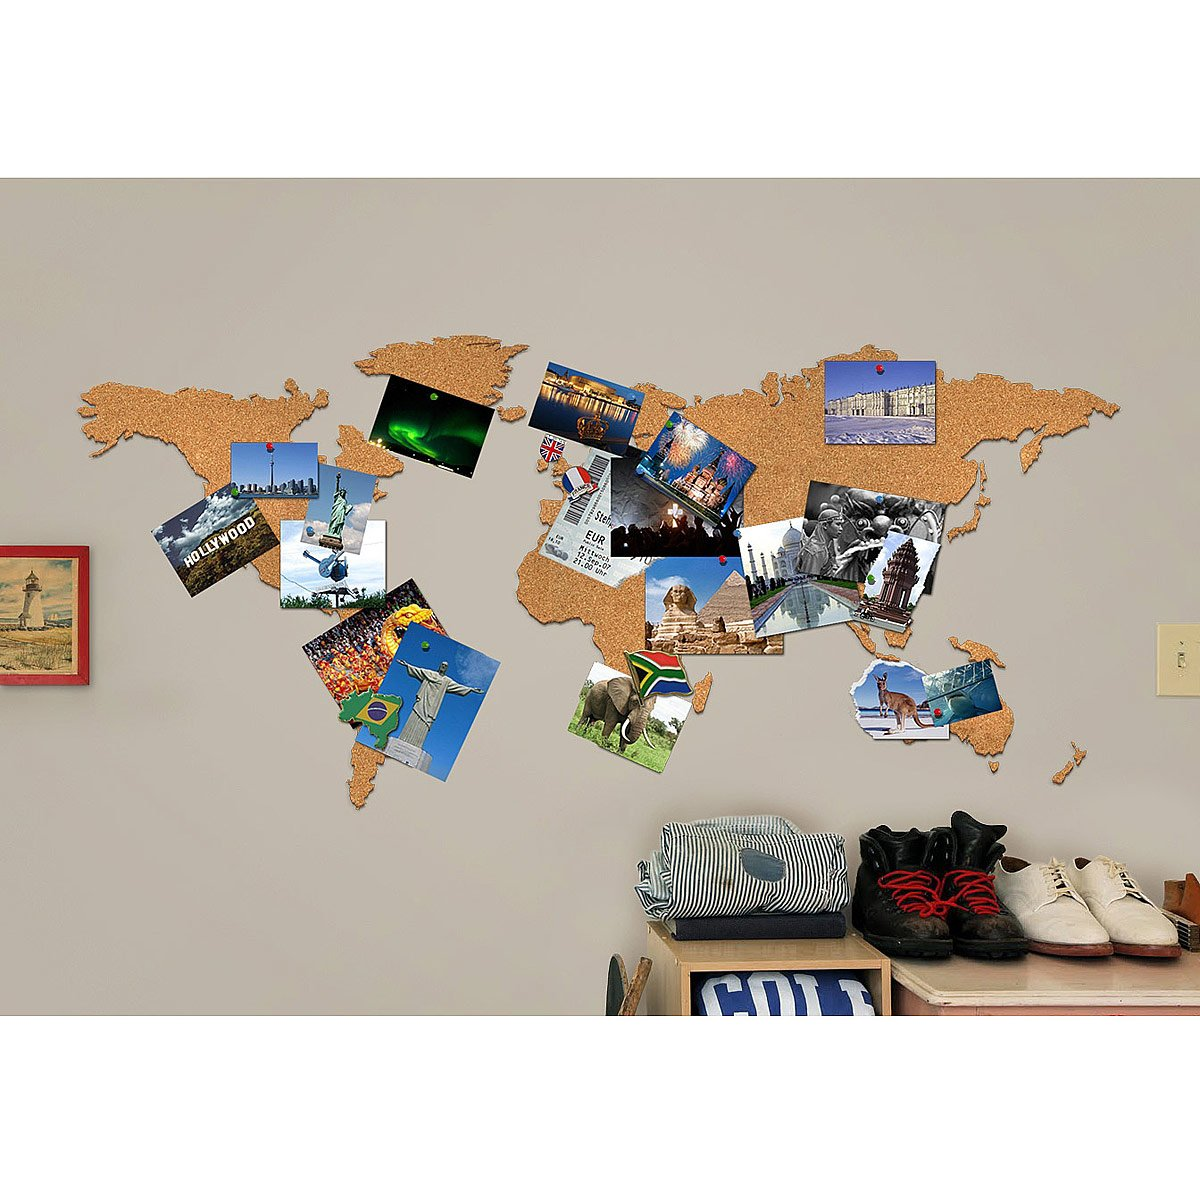 Cork Bulletin Board Cork Map Bulletin Board Map Travel Vision Board Uncommongoods